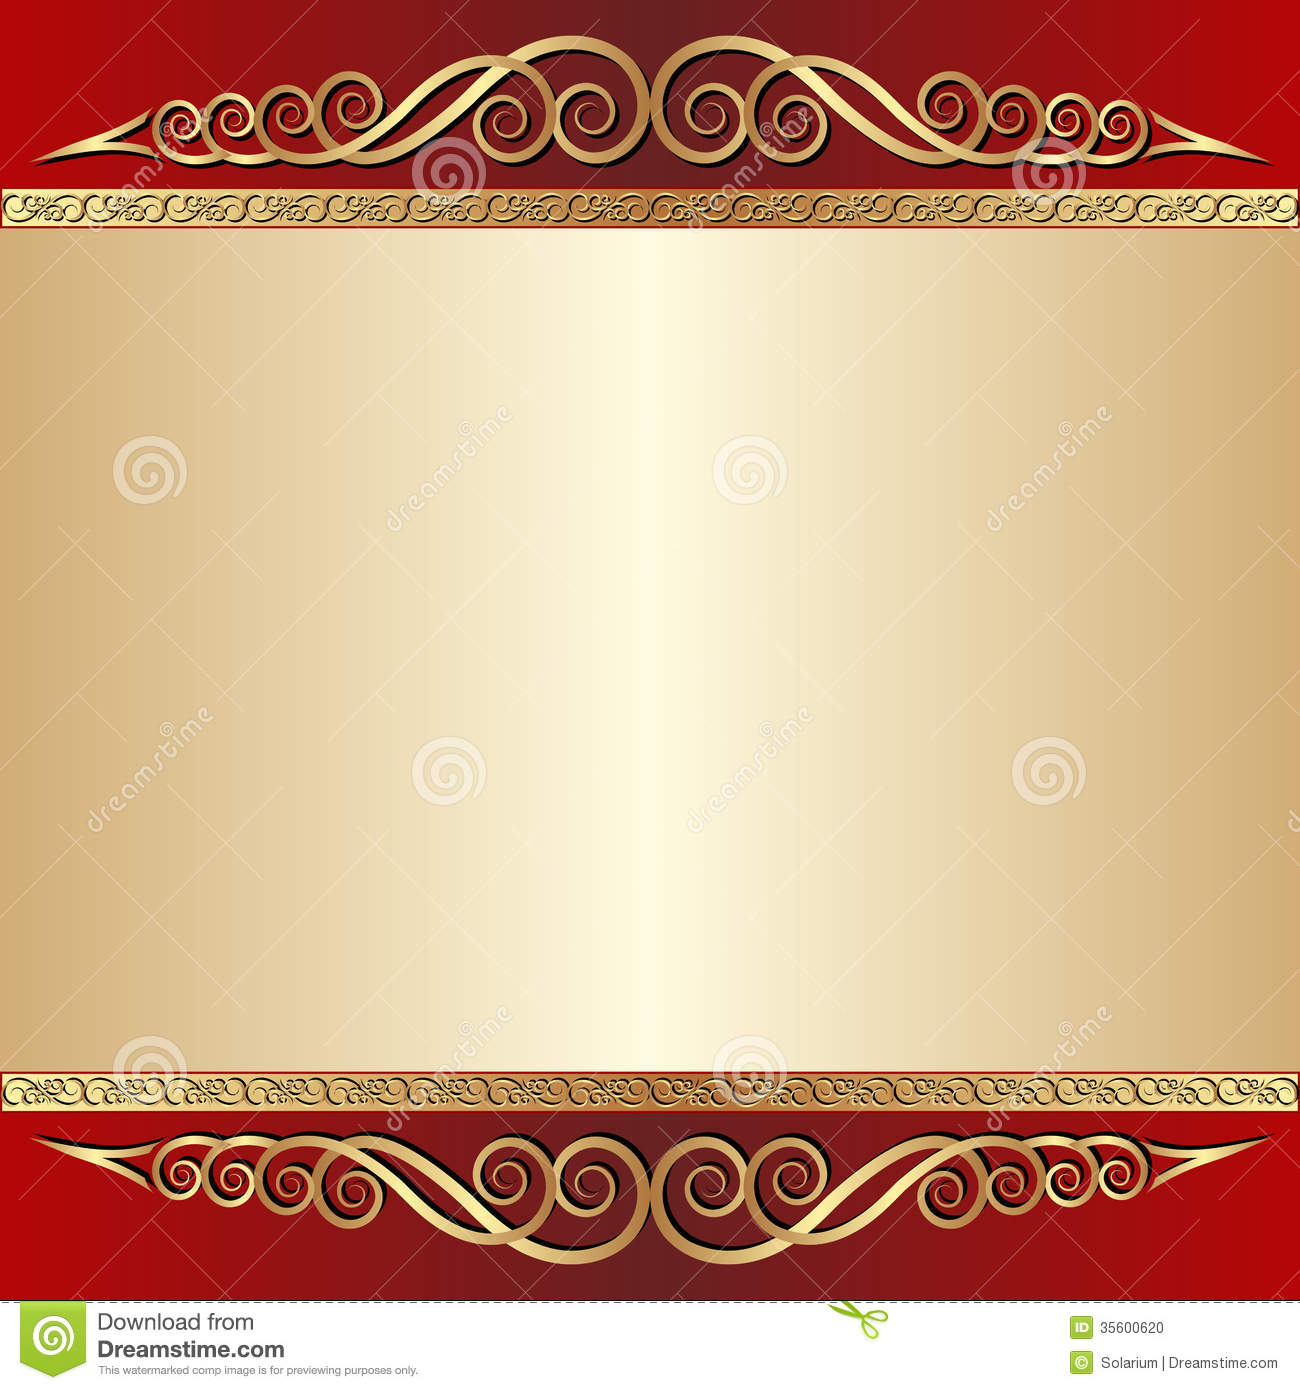 Maroon And Gold Border Maroon and gold background 1300x1390